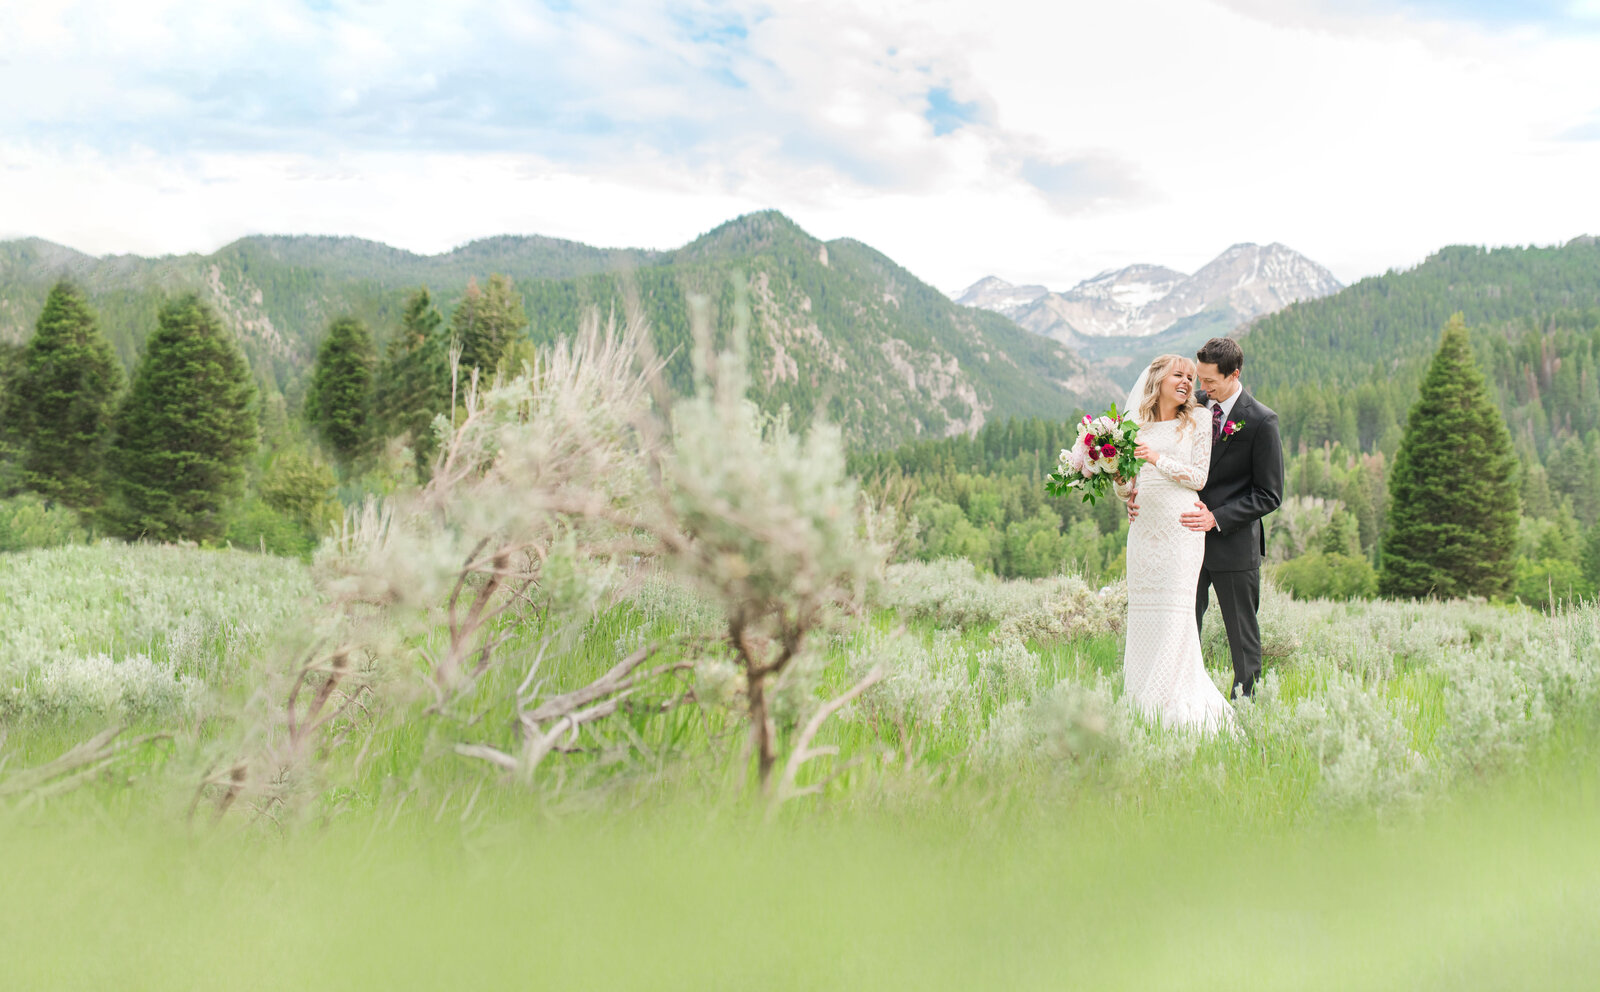 Bride and groom at Tibble Fork with Mount Timpanogos in the background